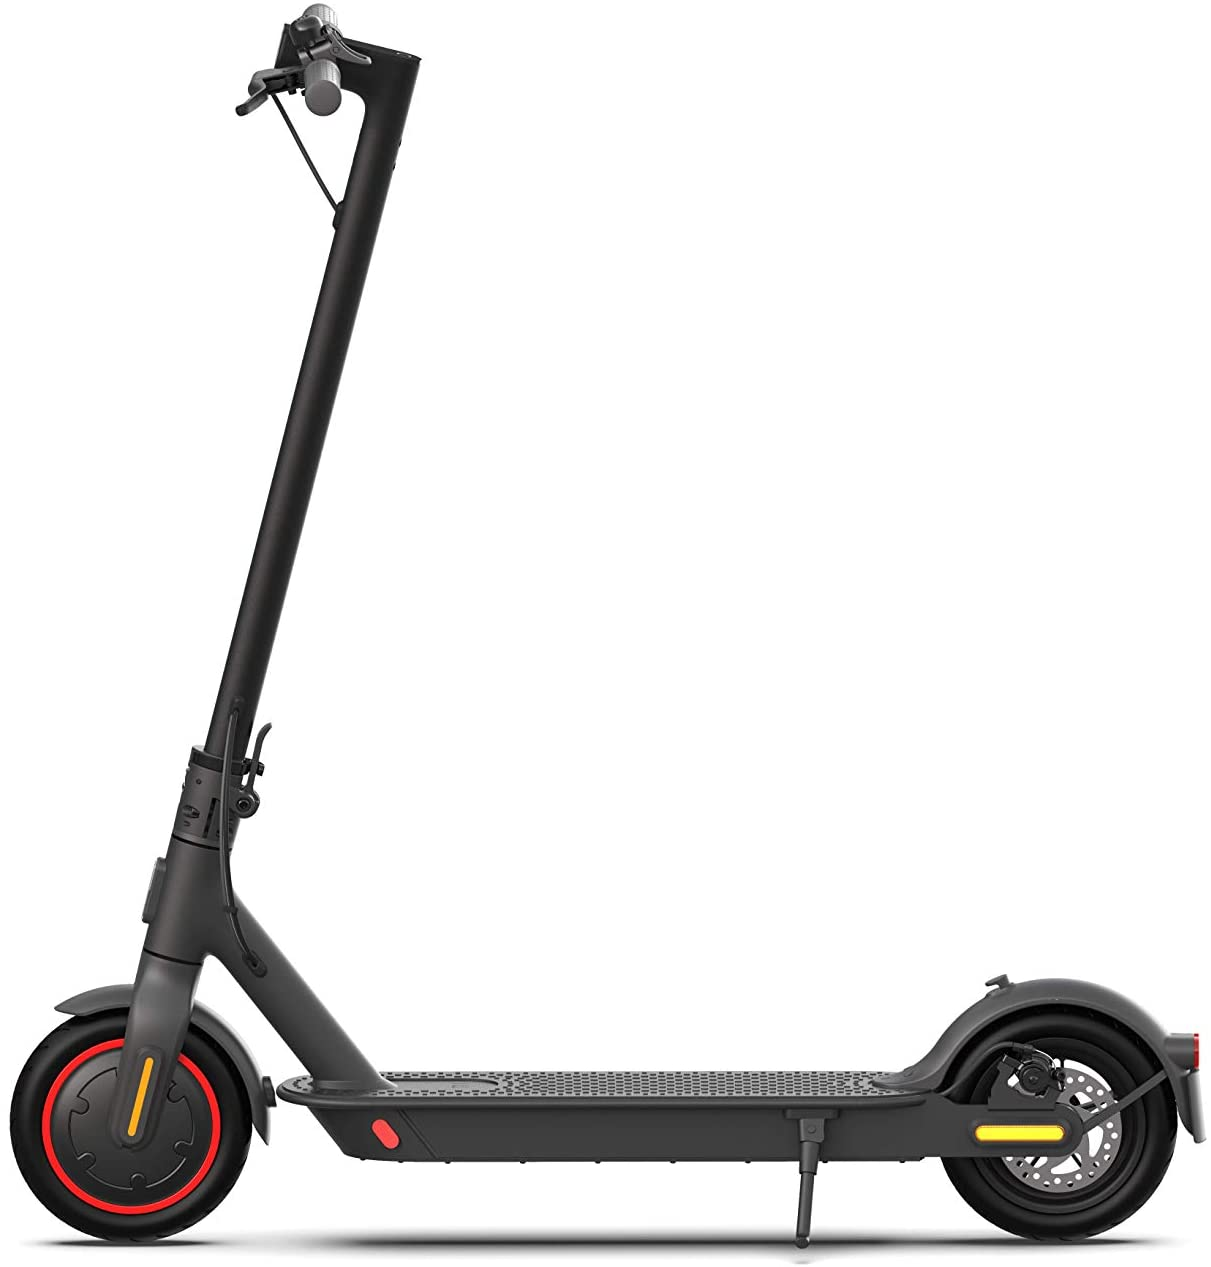 XIAOMI MI ELECTRIC SCOOTER PRO 2 – incentivo mobilità